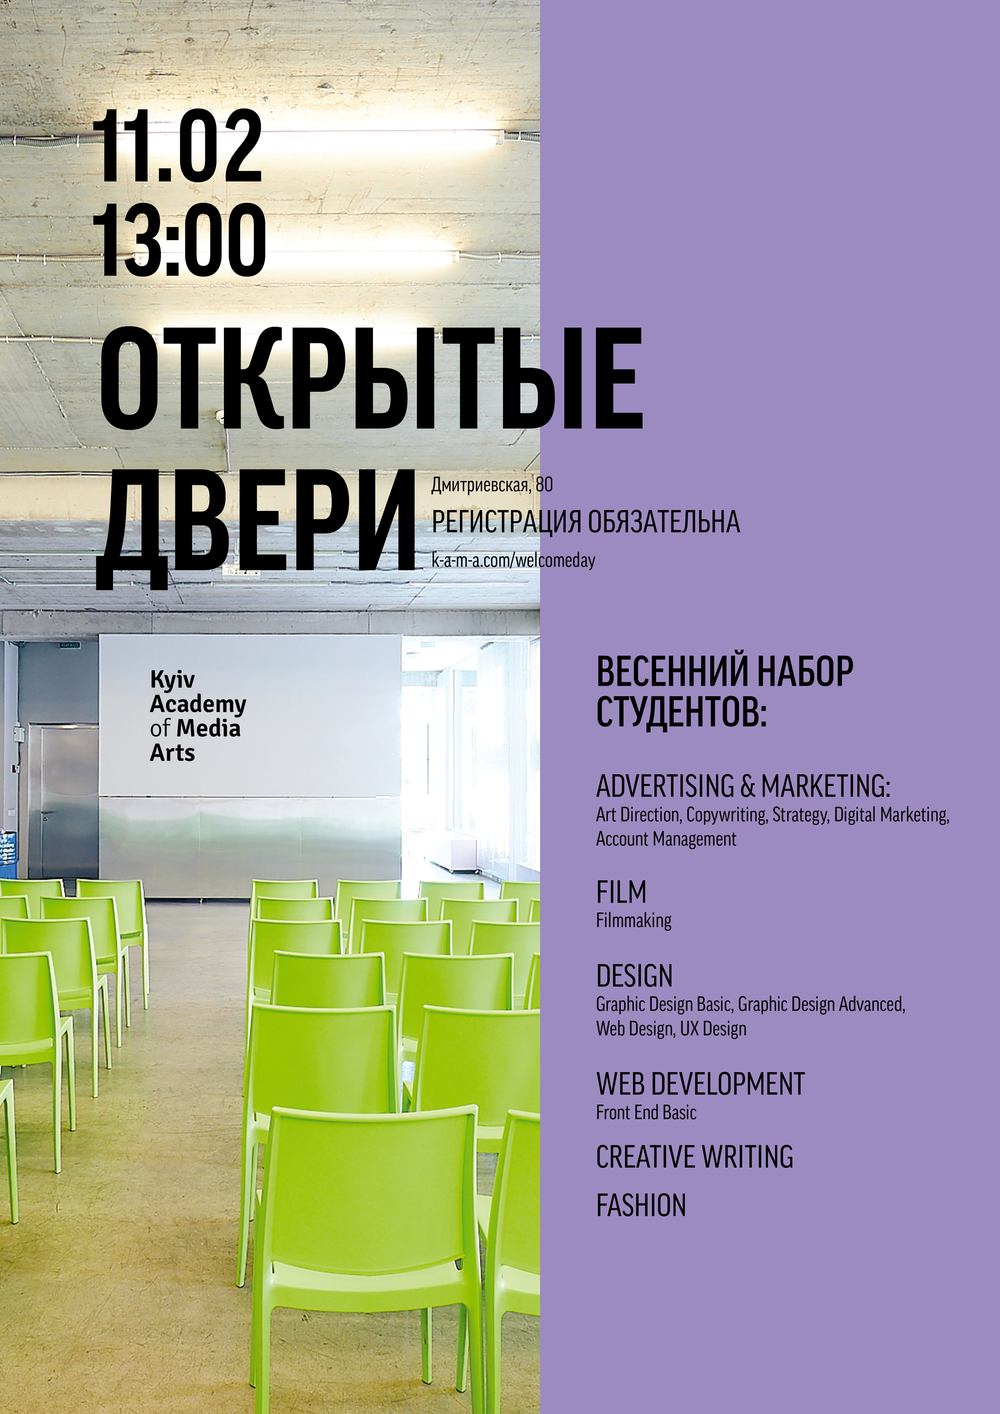 openday_2018_A4.png